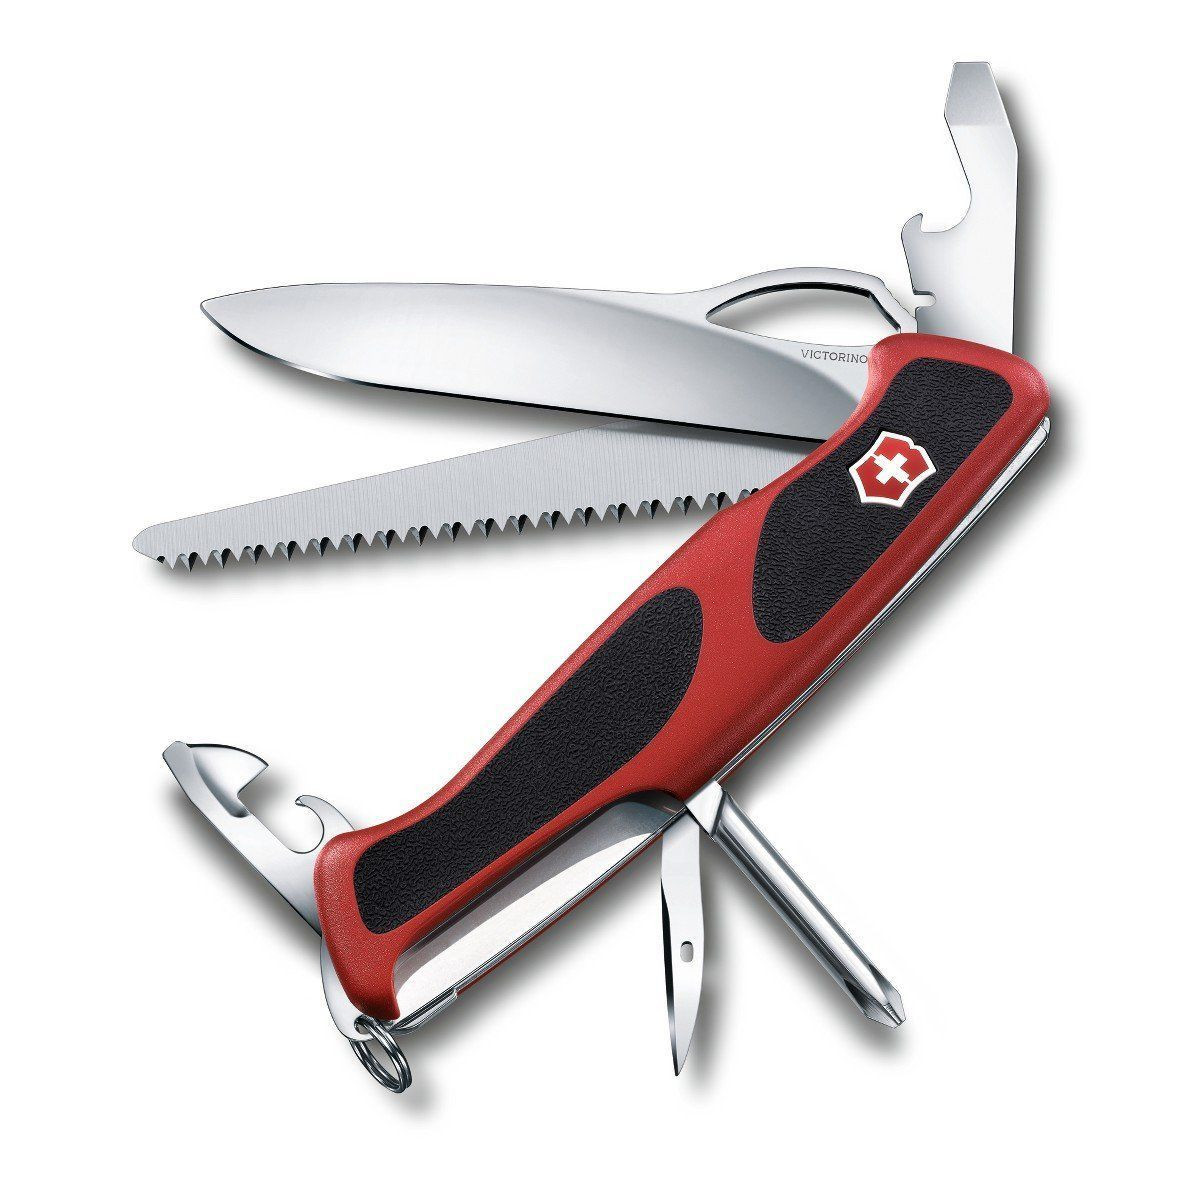 Swiss Army Knife Guide 5 Best Swiss Army Knives To Buy